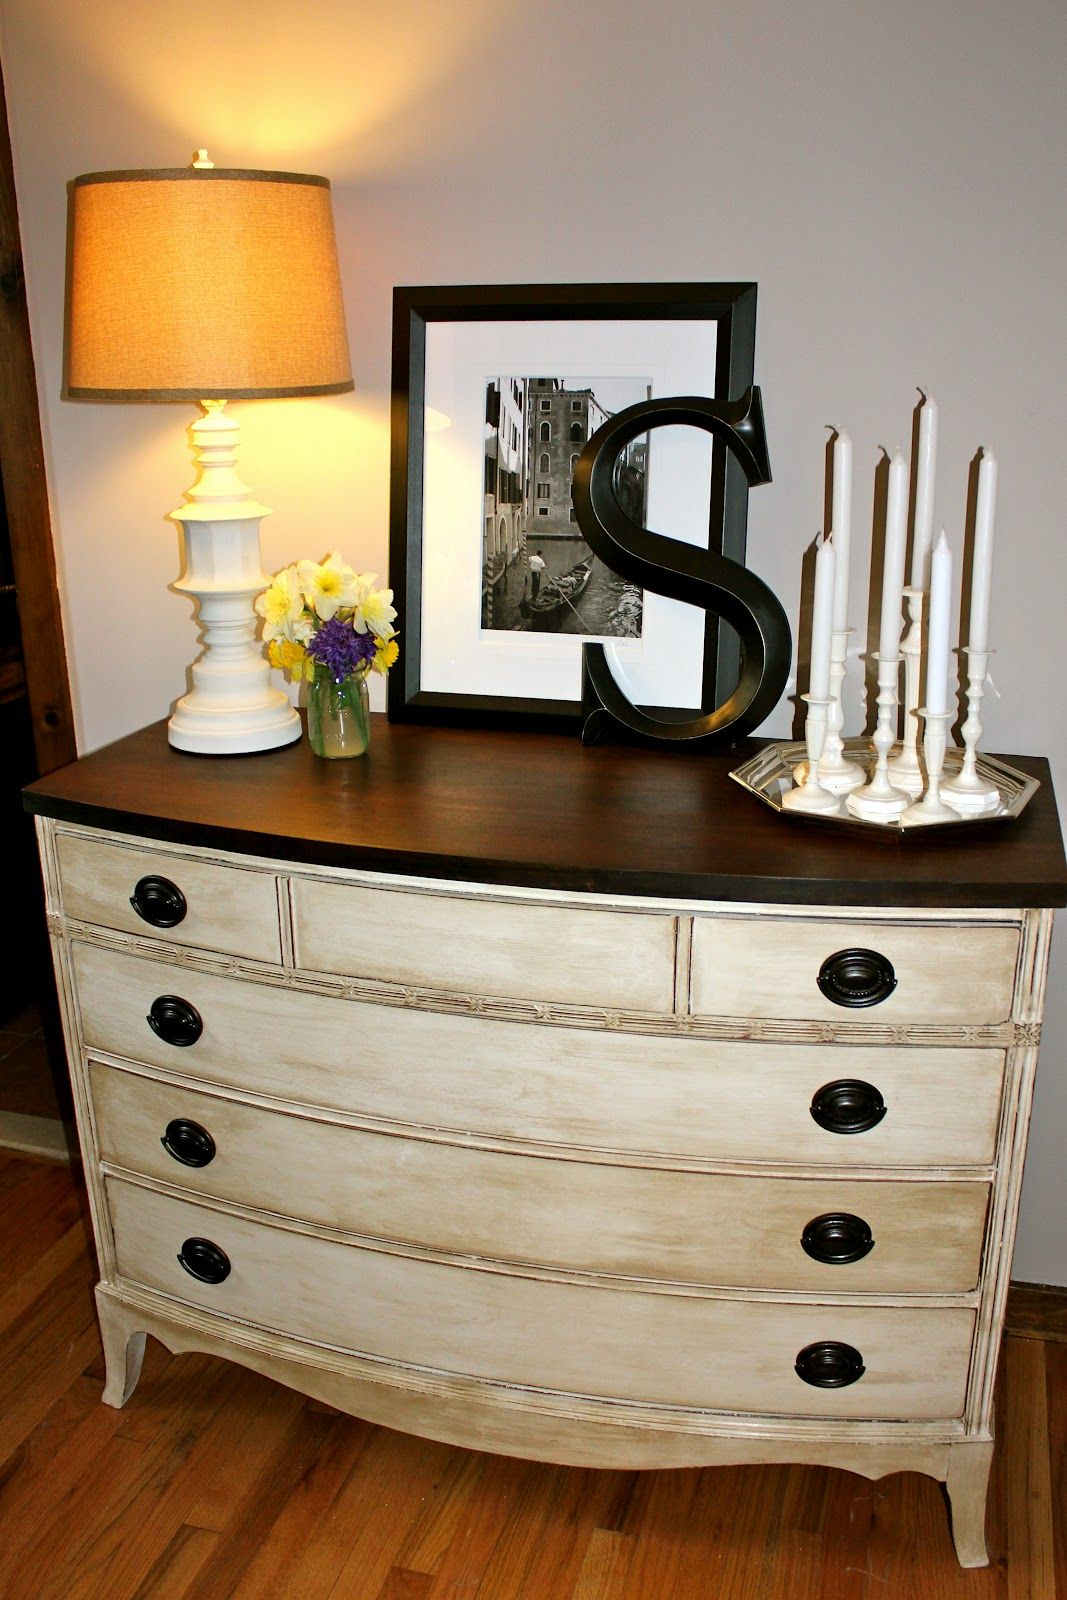 Exceptionnel I Have A Dresser JUST Like This (only All Dark Wood)!!! Maybe I Should Paint  Mine Too....??? It Looks GREAT!